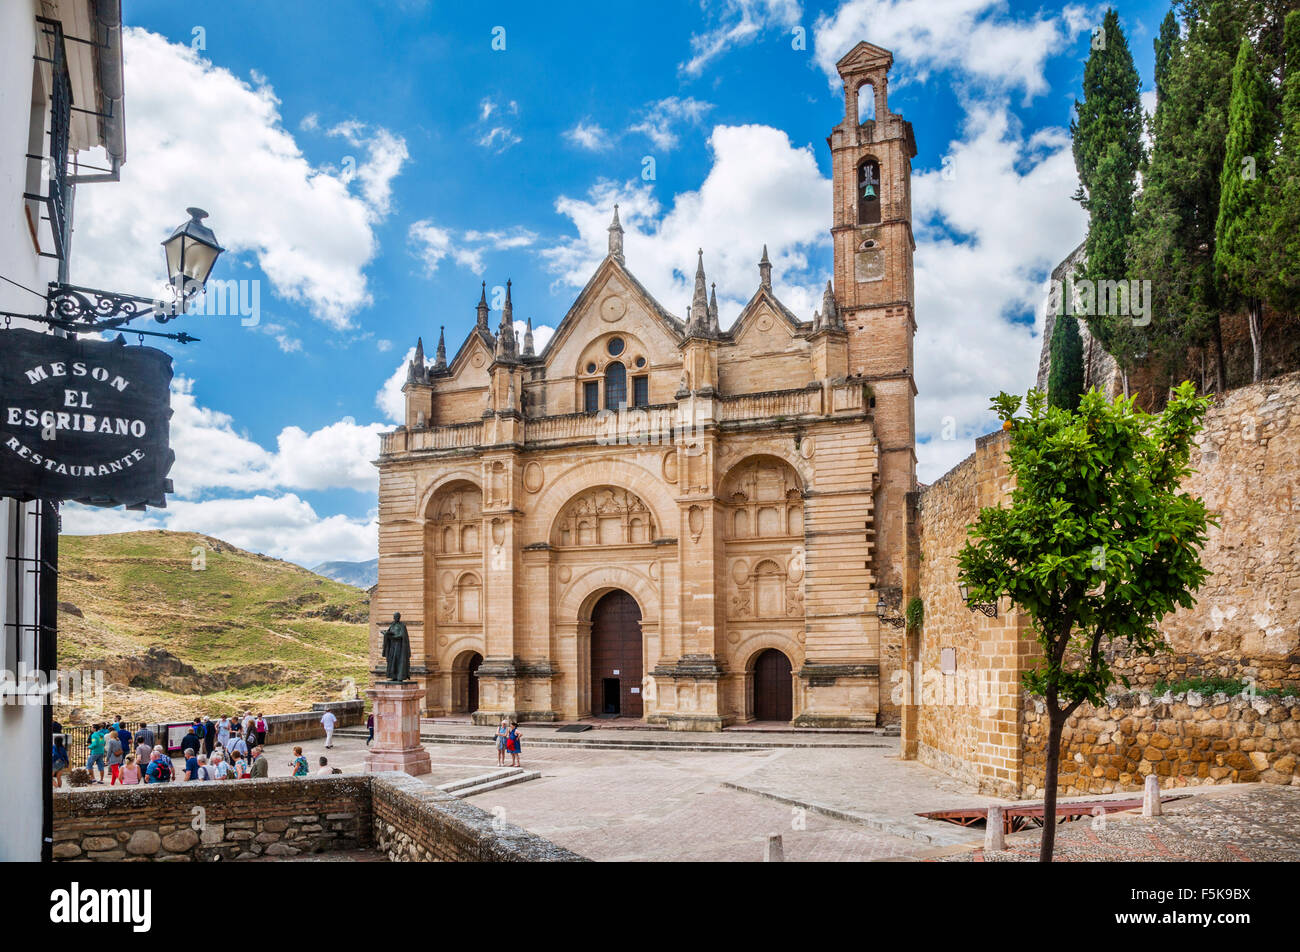 Spain, Andalusia, Province of Malaga, Antequera, Royal Collegiate Church, Church of Real Colegiata de Santa Maria - Stock Image